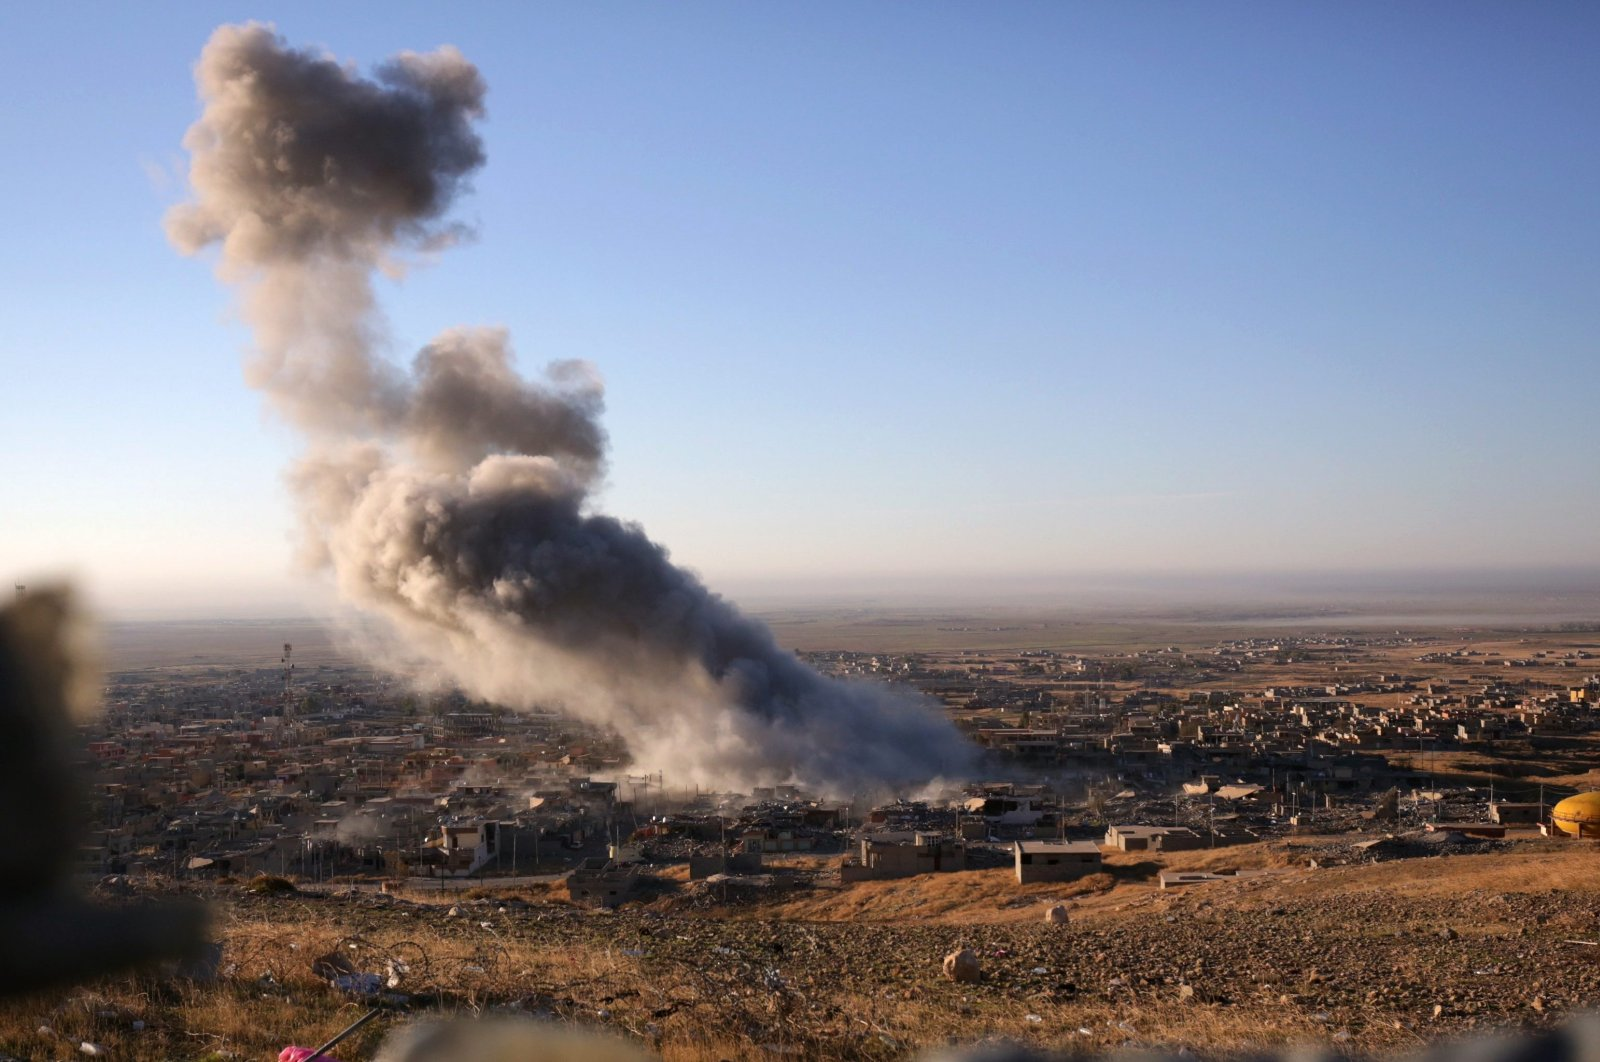 Smoke believed to be from airstrike billows over the northern Iraqi town of Sinjar Nov. 12, 2015. (AP File Photo)